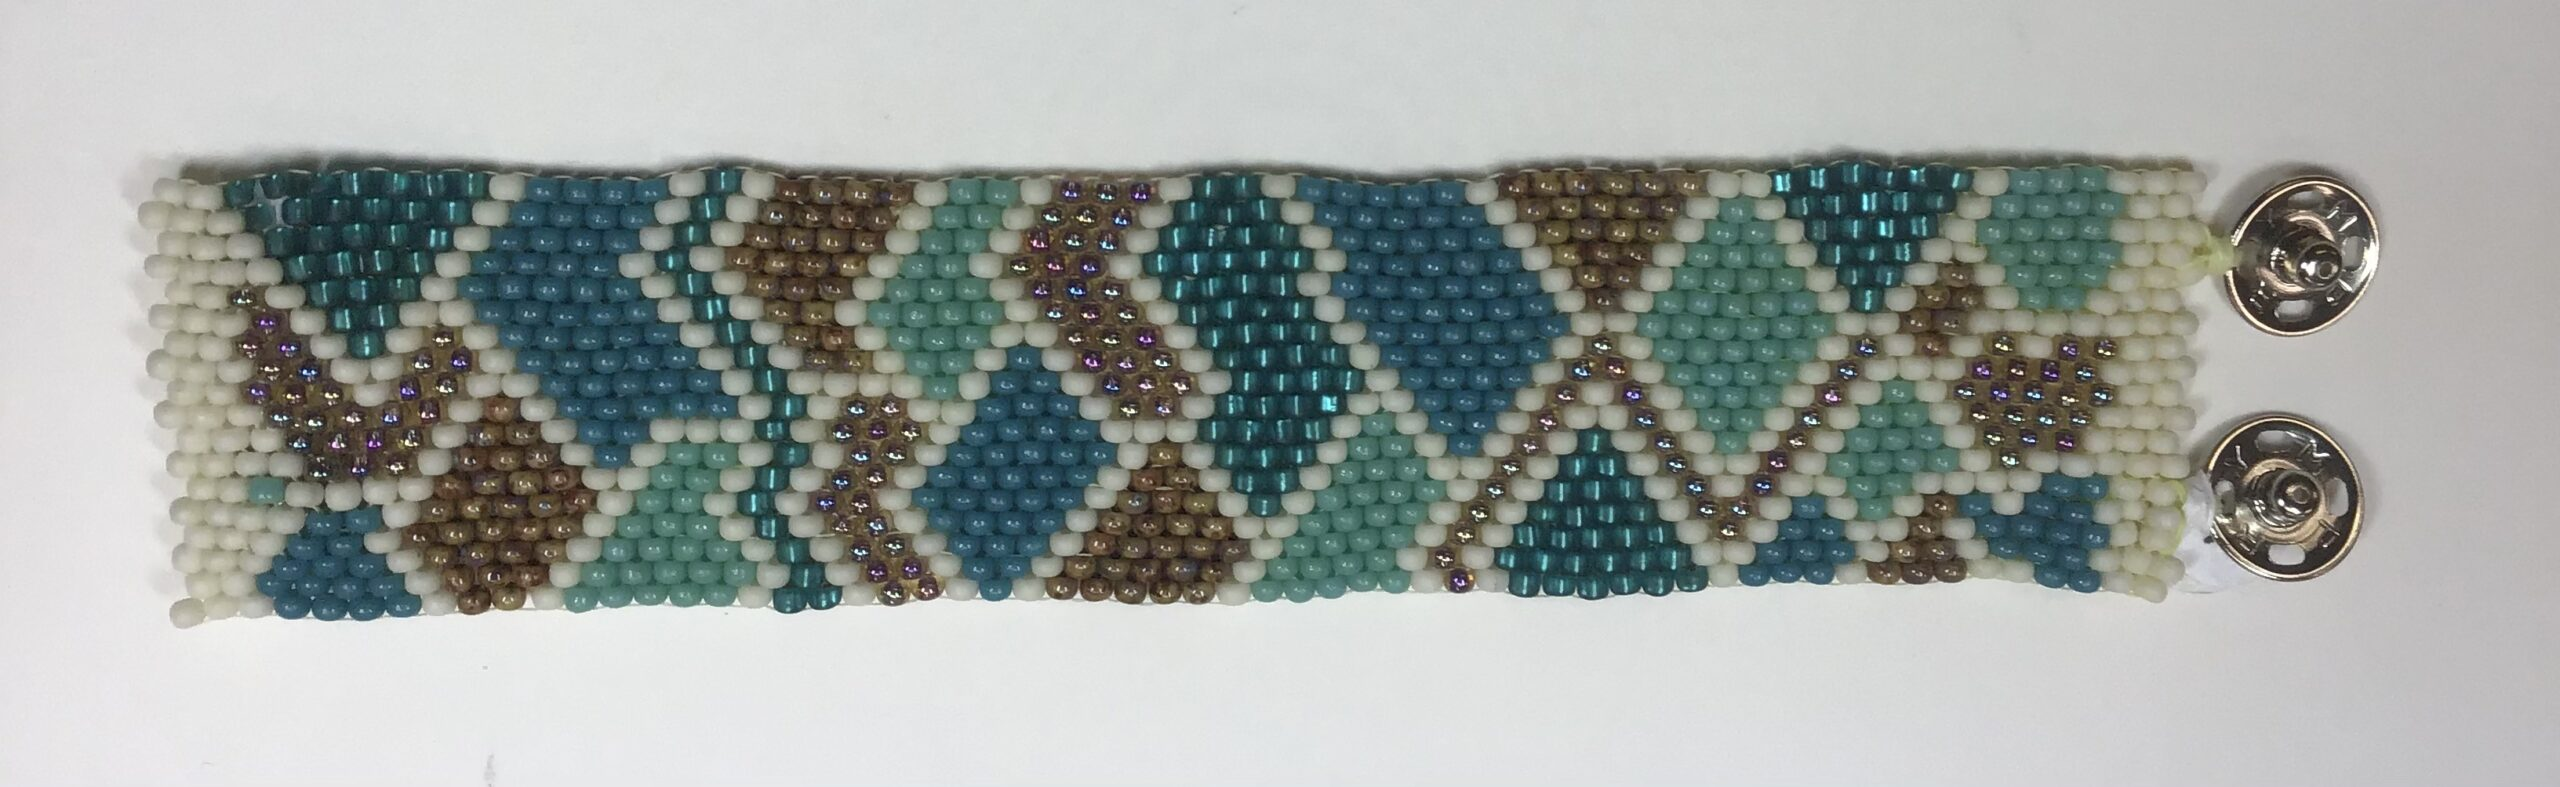 Patchwork Peyote Cuff